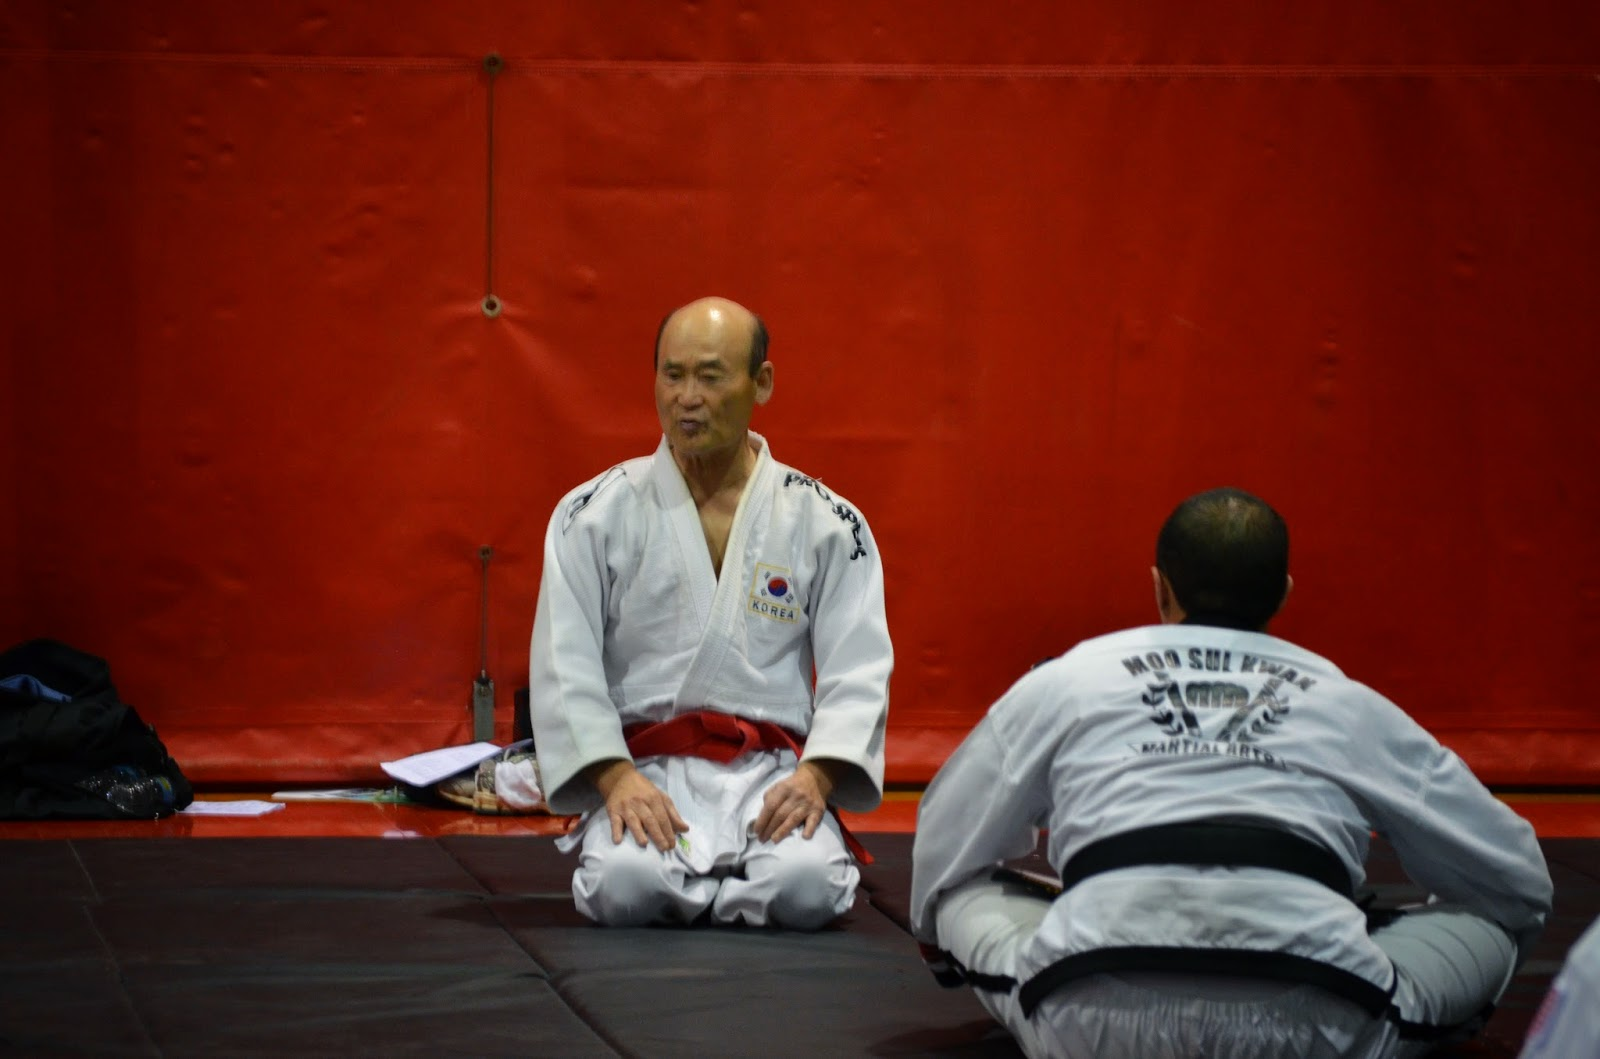 Judo Great Grandmaster Shin Talking to Students